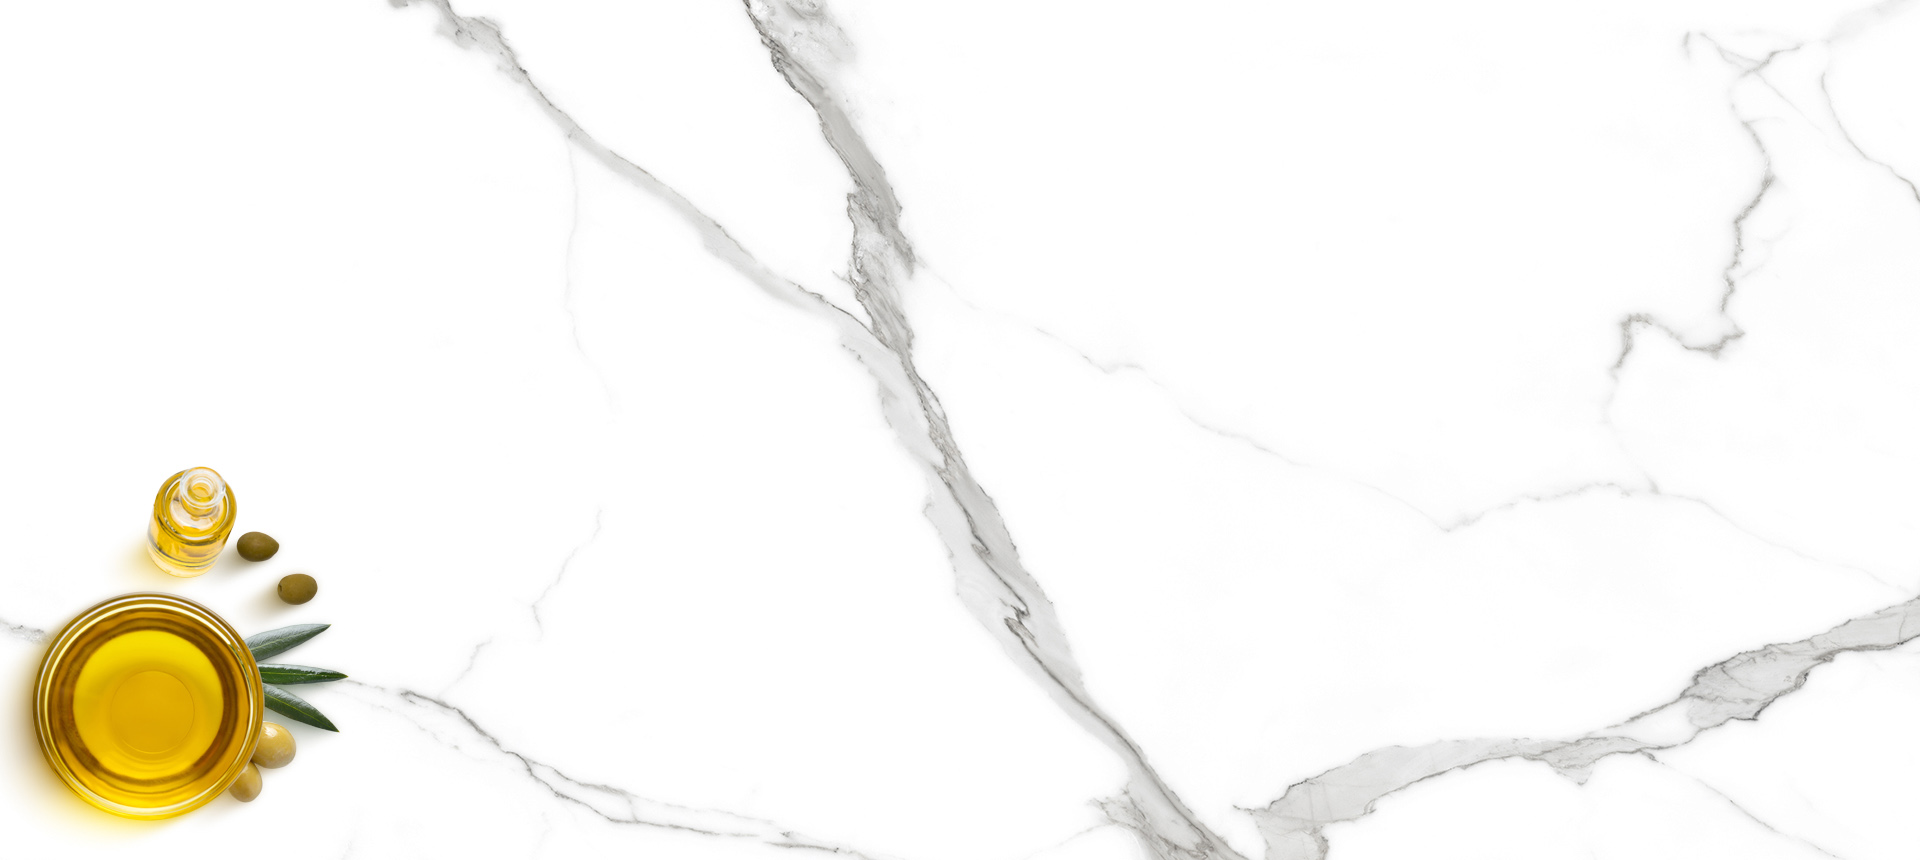 STATUARIO NATURAL-RP1027_Full Slab_With Material_2400x1200 mm_1920x860